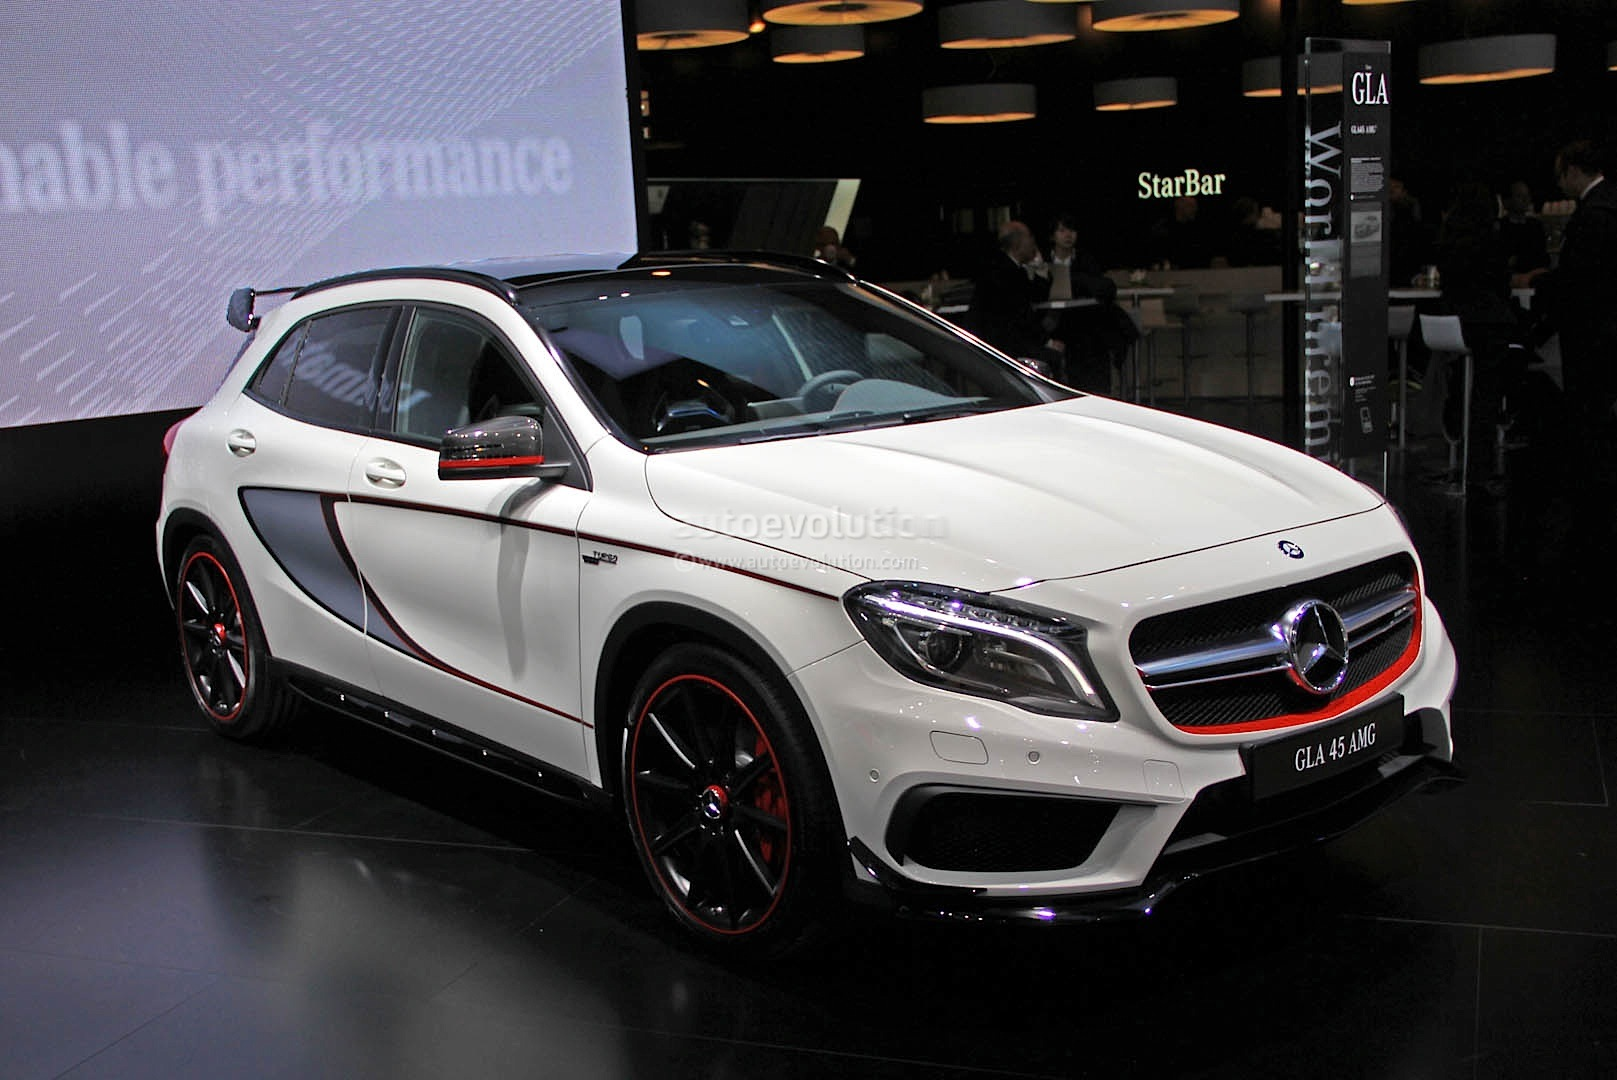 2015 gla 45 amg live photos from naias autoevolution. Black Bedroom Furniture Sets. Home Design Ideas